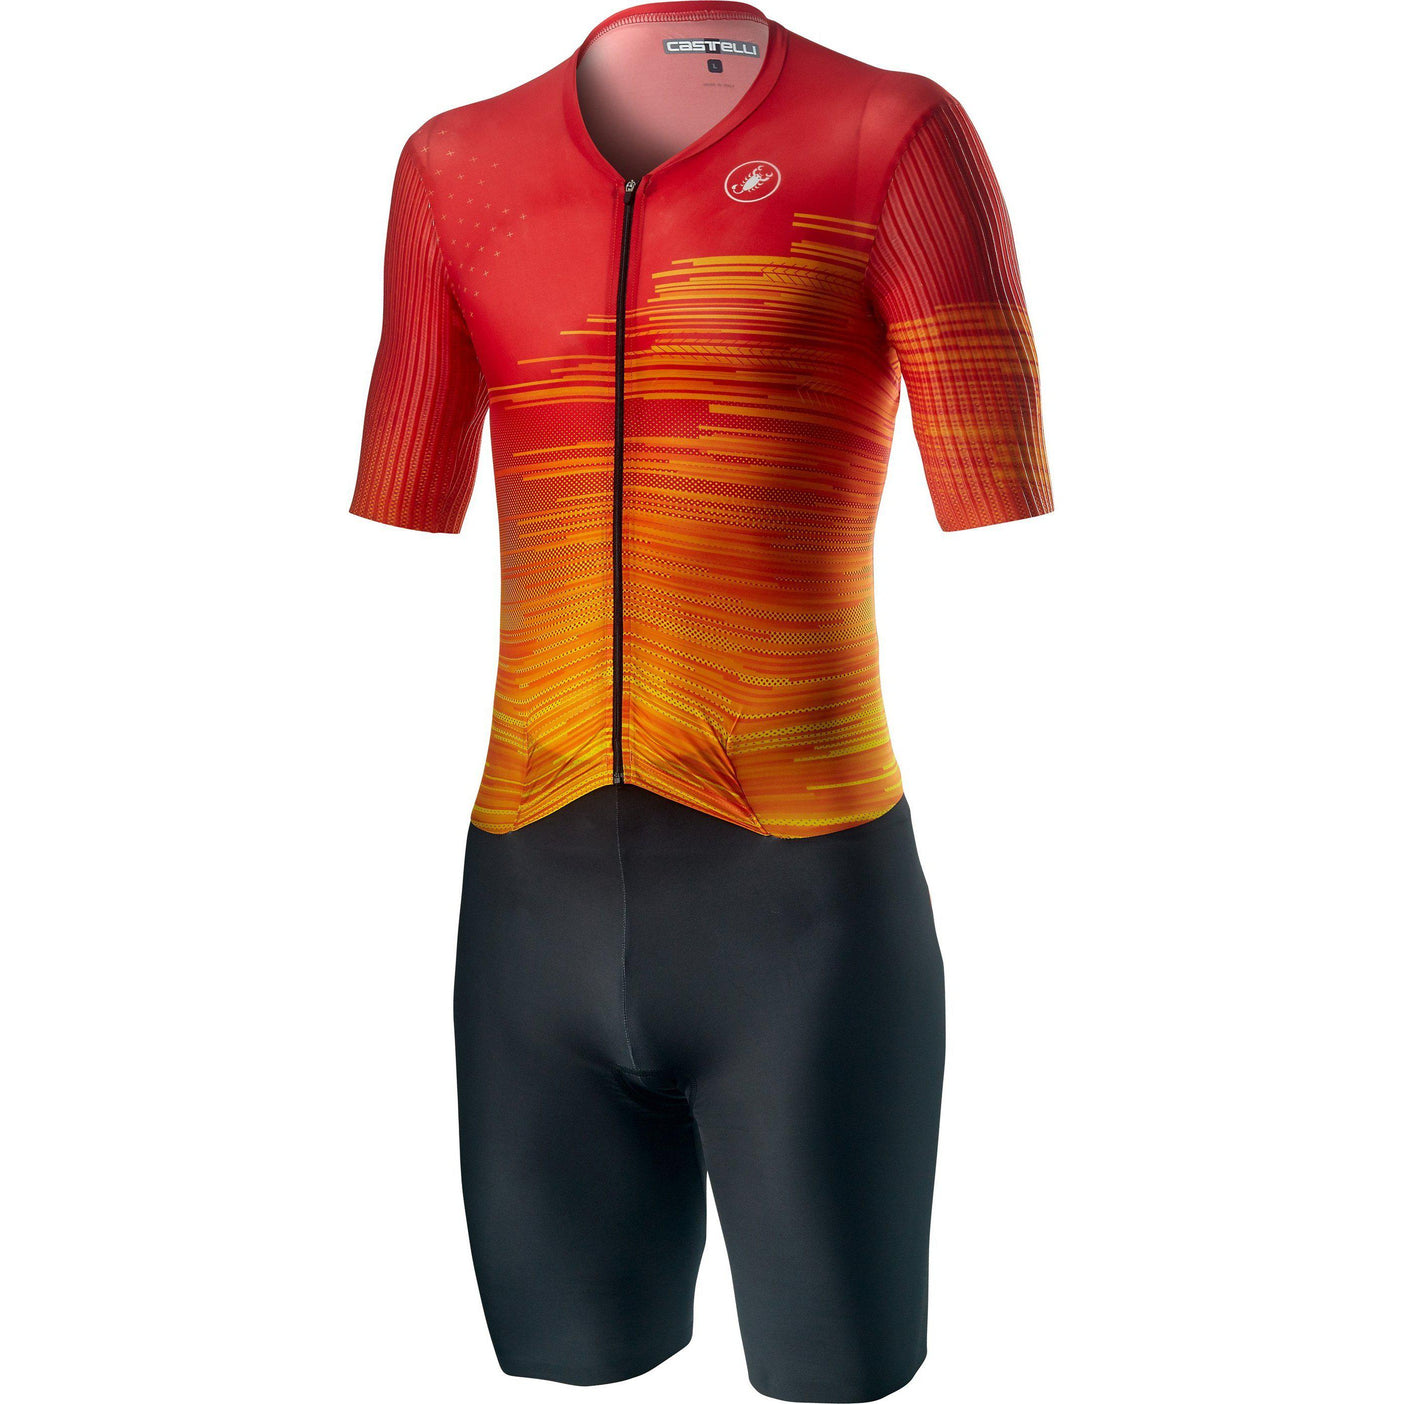 Castelli-Castelli PR Speed Suit-Fiery Red-S-CS200910512-saddleback-elite-performance-cycling